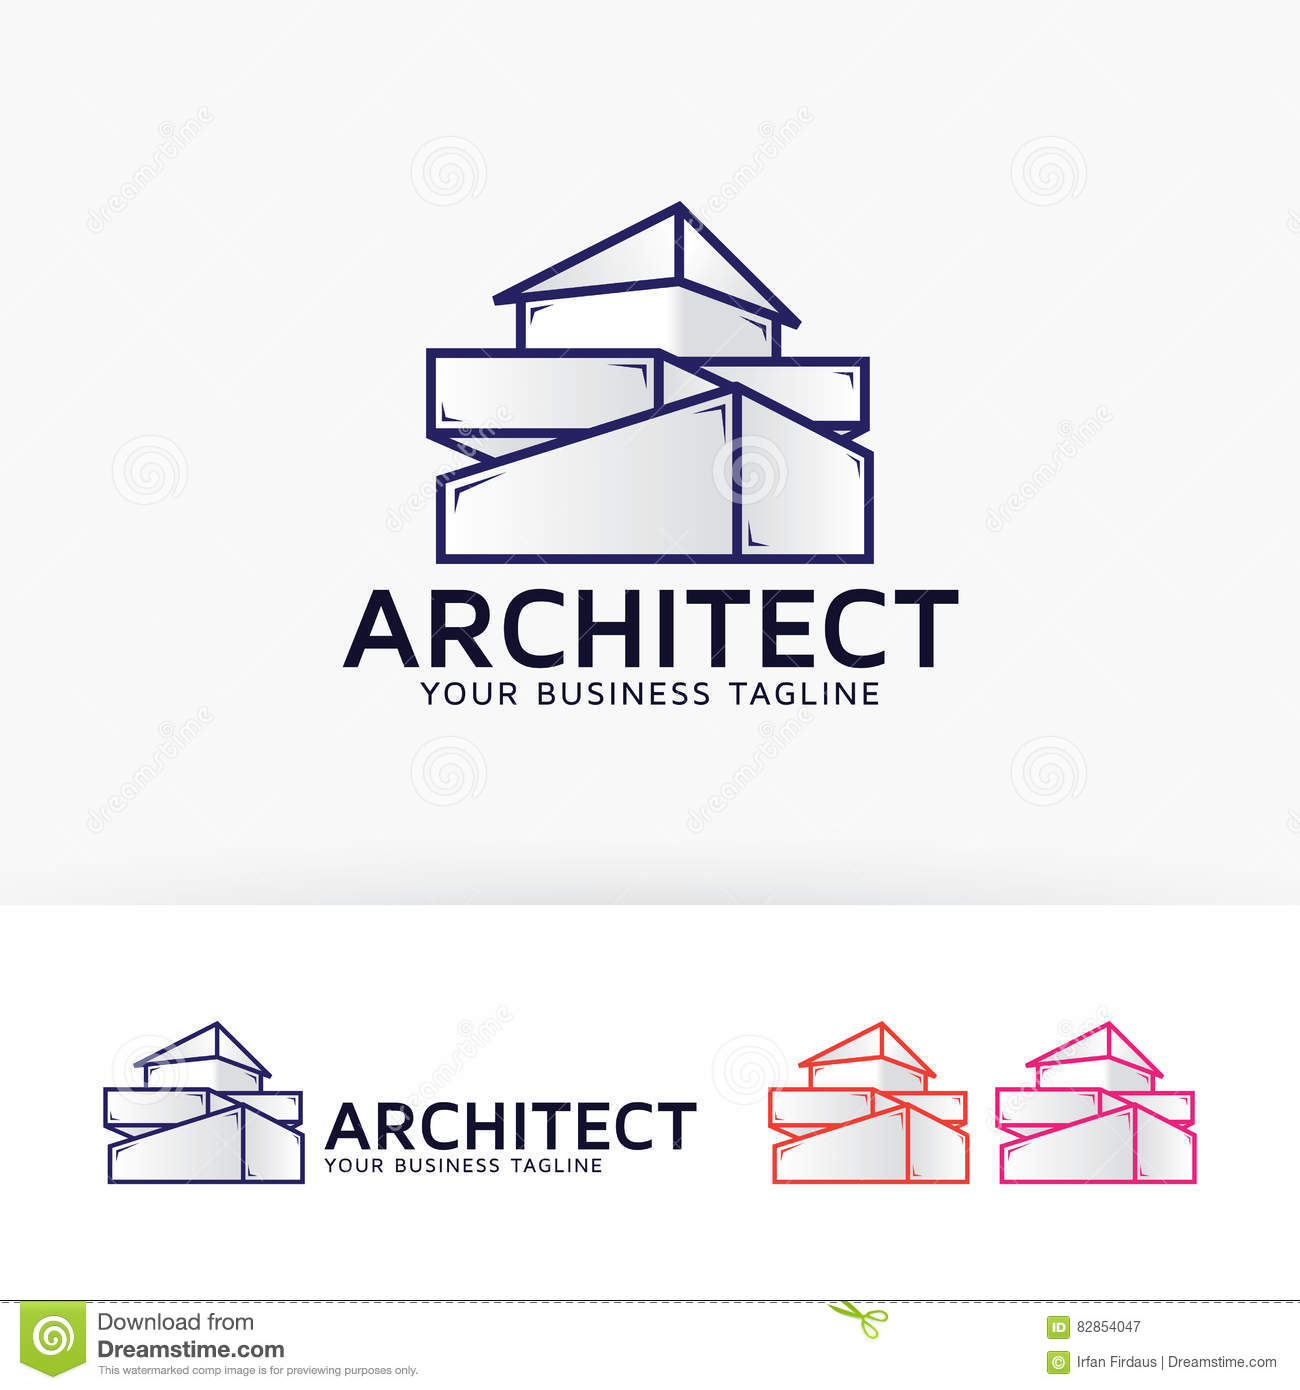 architecture company logo design stock vector - image: 82854047